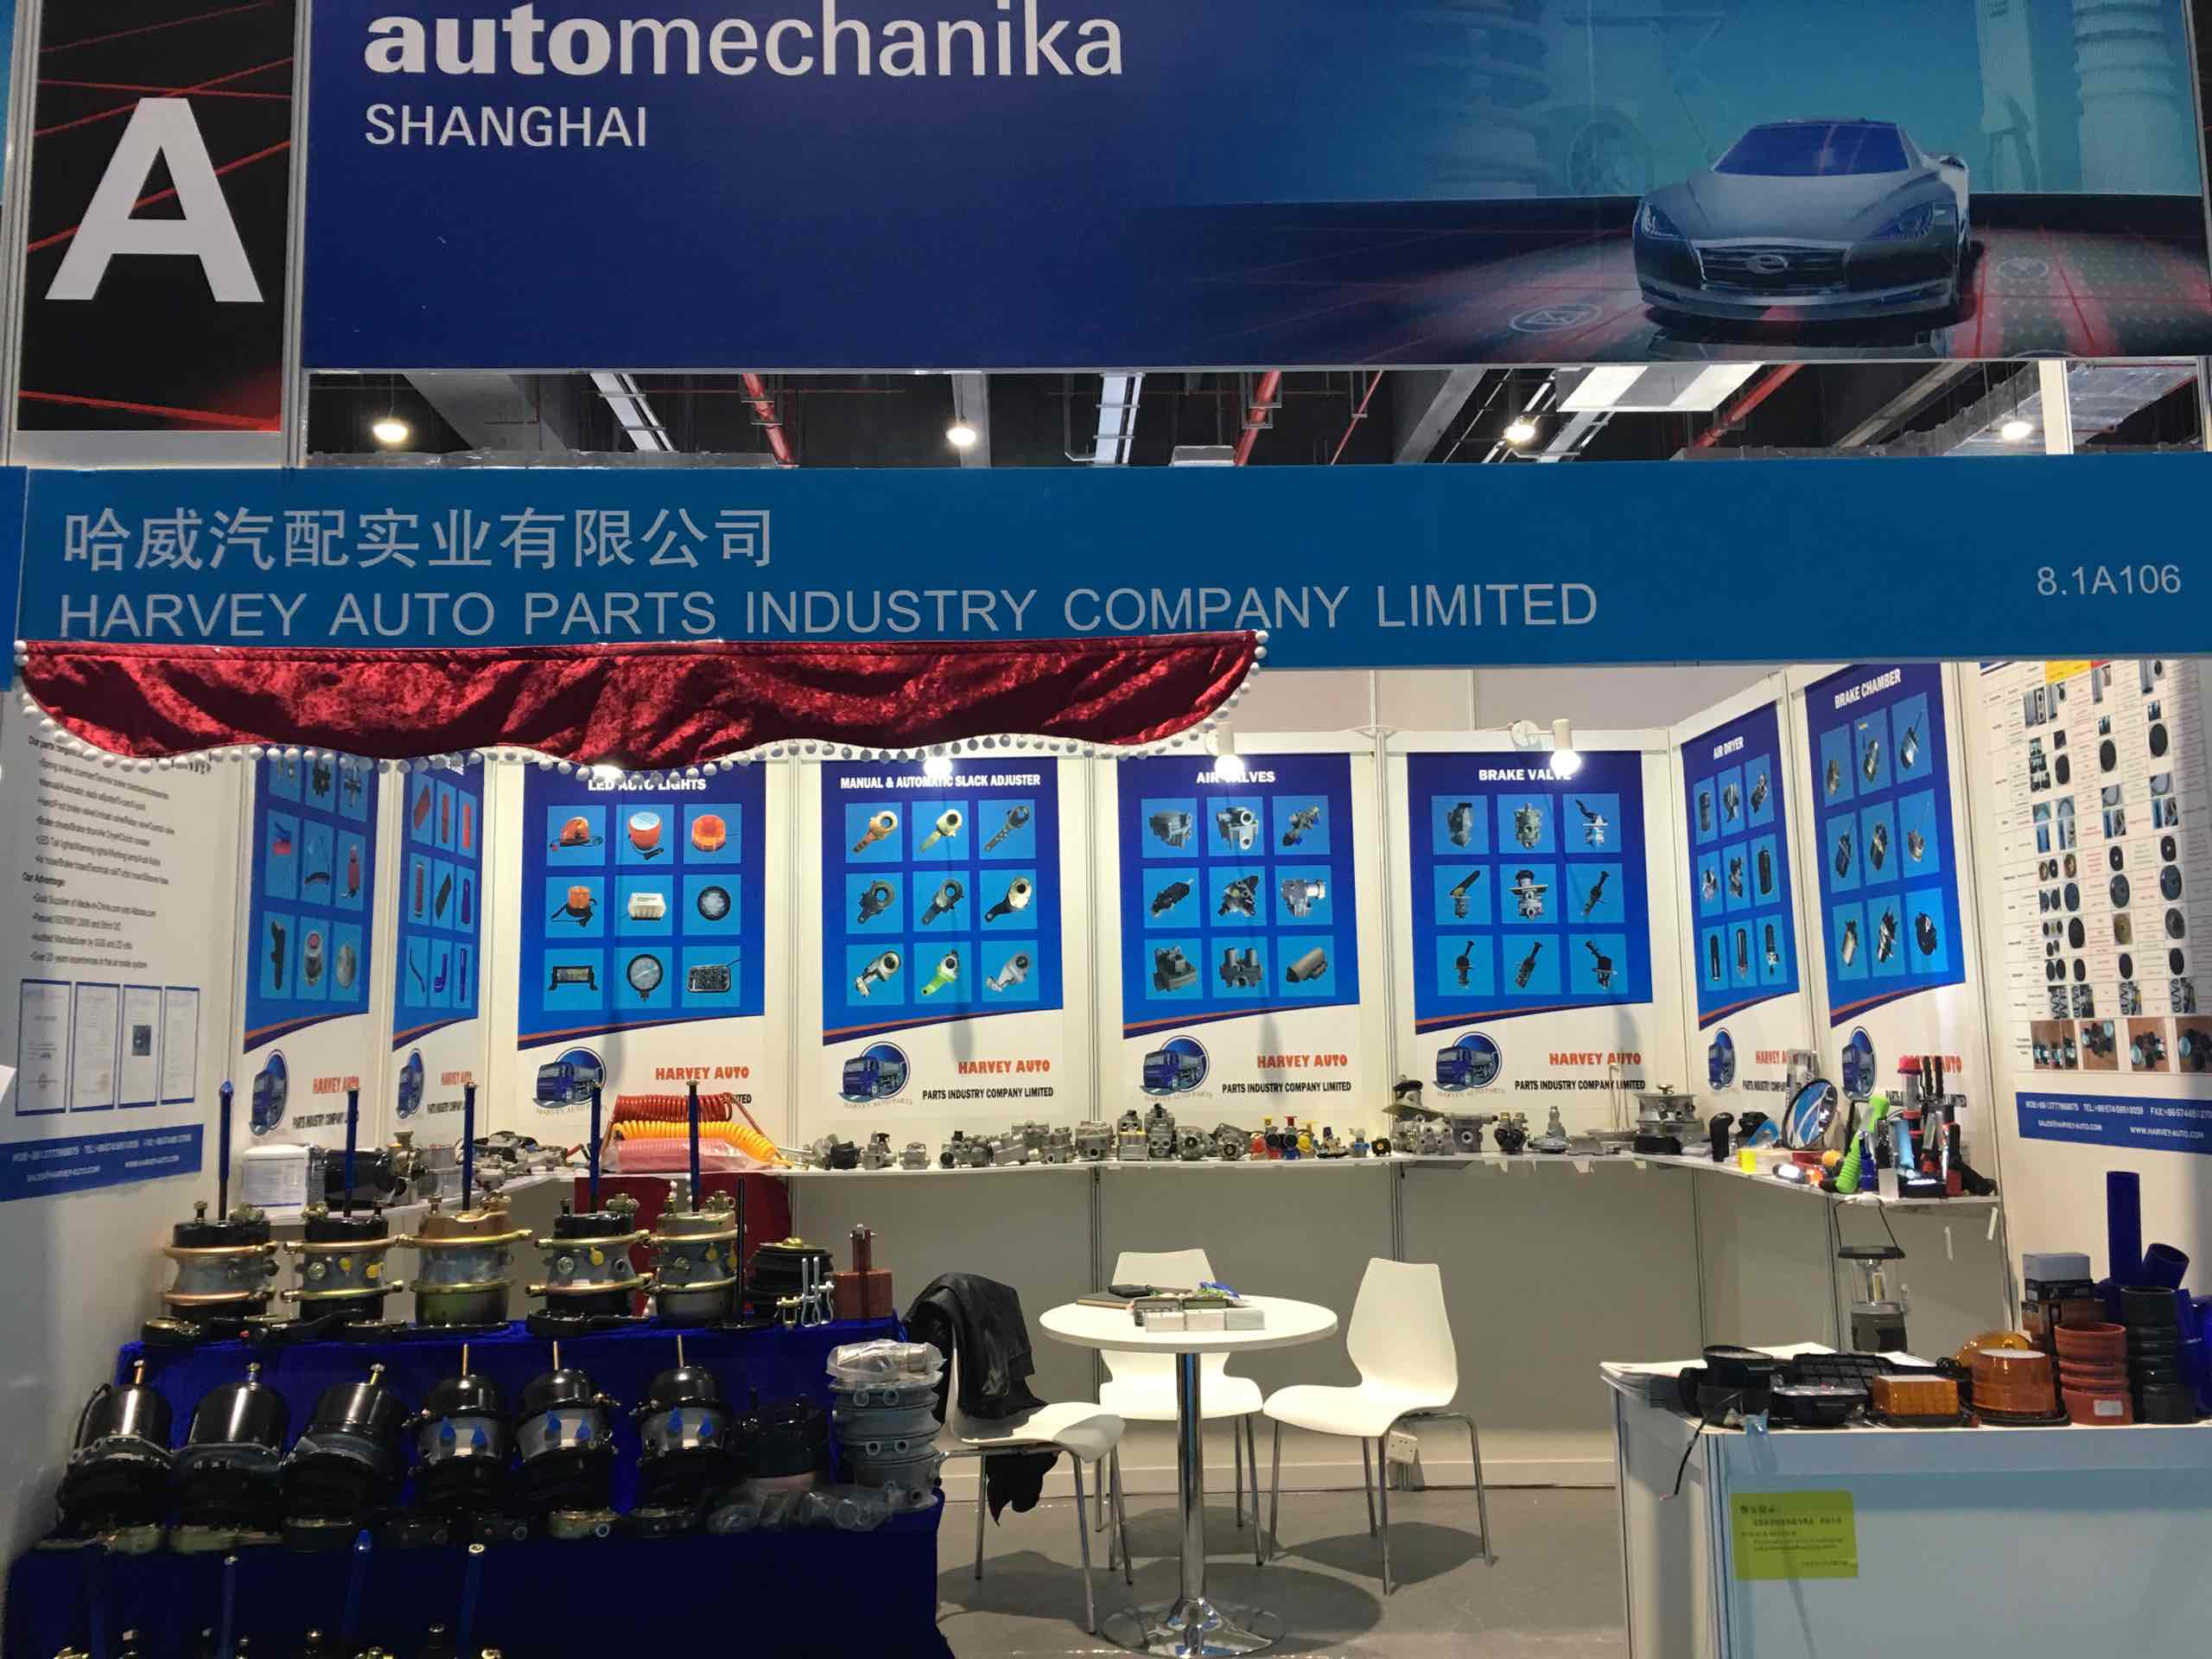 Shanghai Automechanika Exhibition